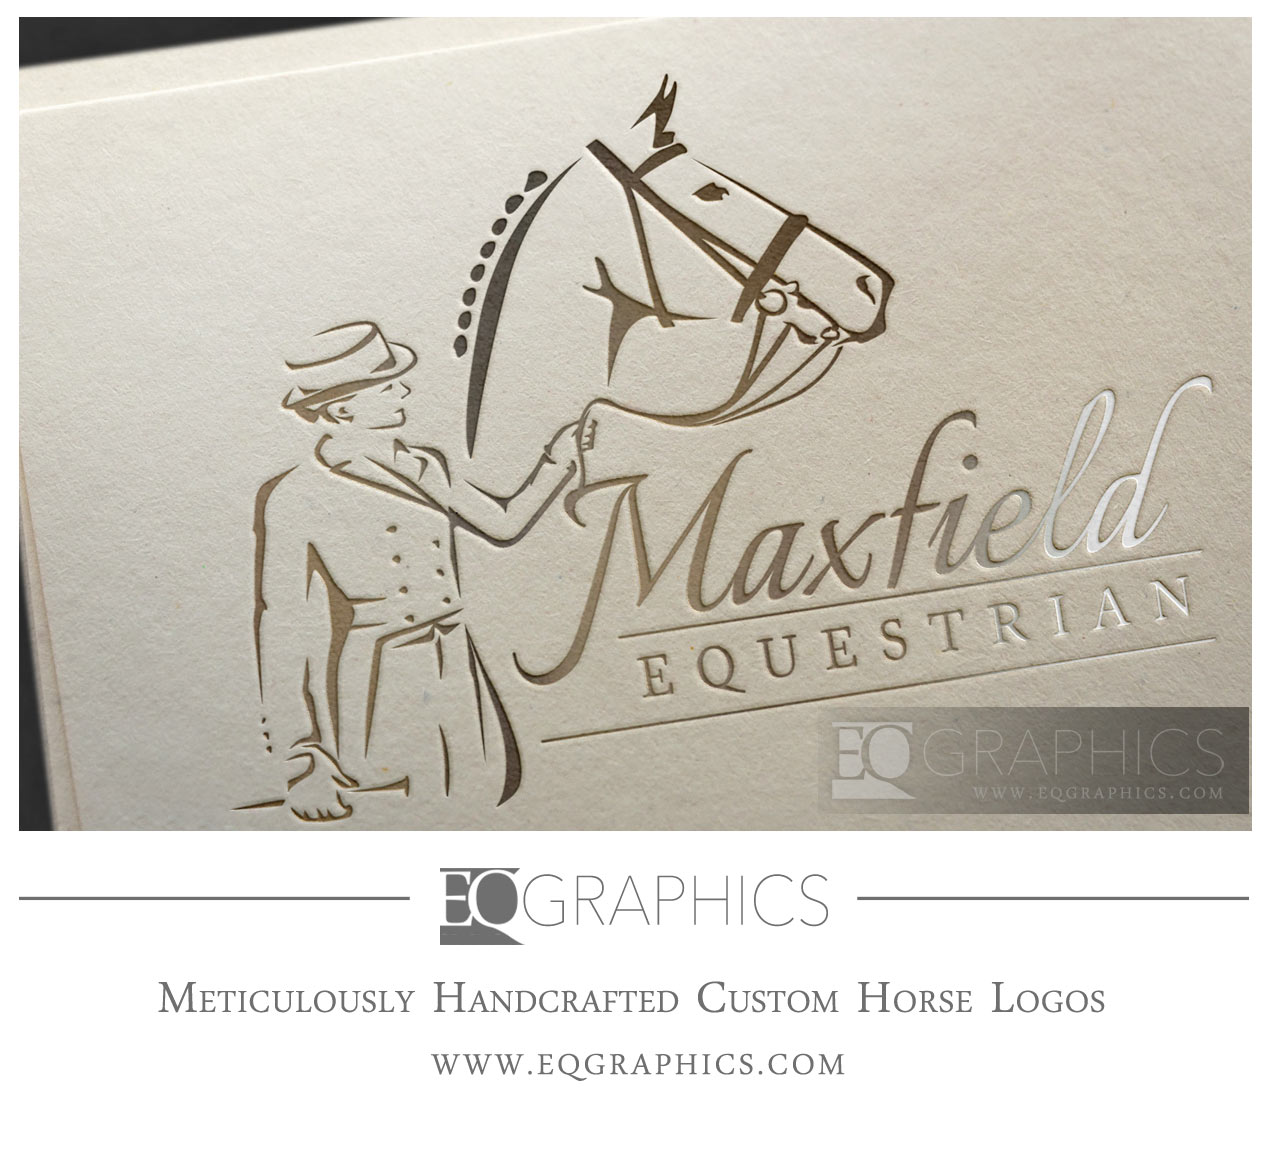 Maxfield Equestrian Dressage Rider Shadbelly Logo by EQ Graphics Equine Designer Logos